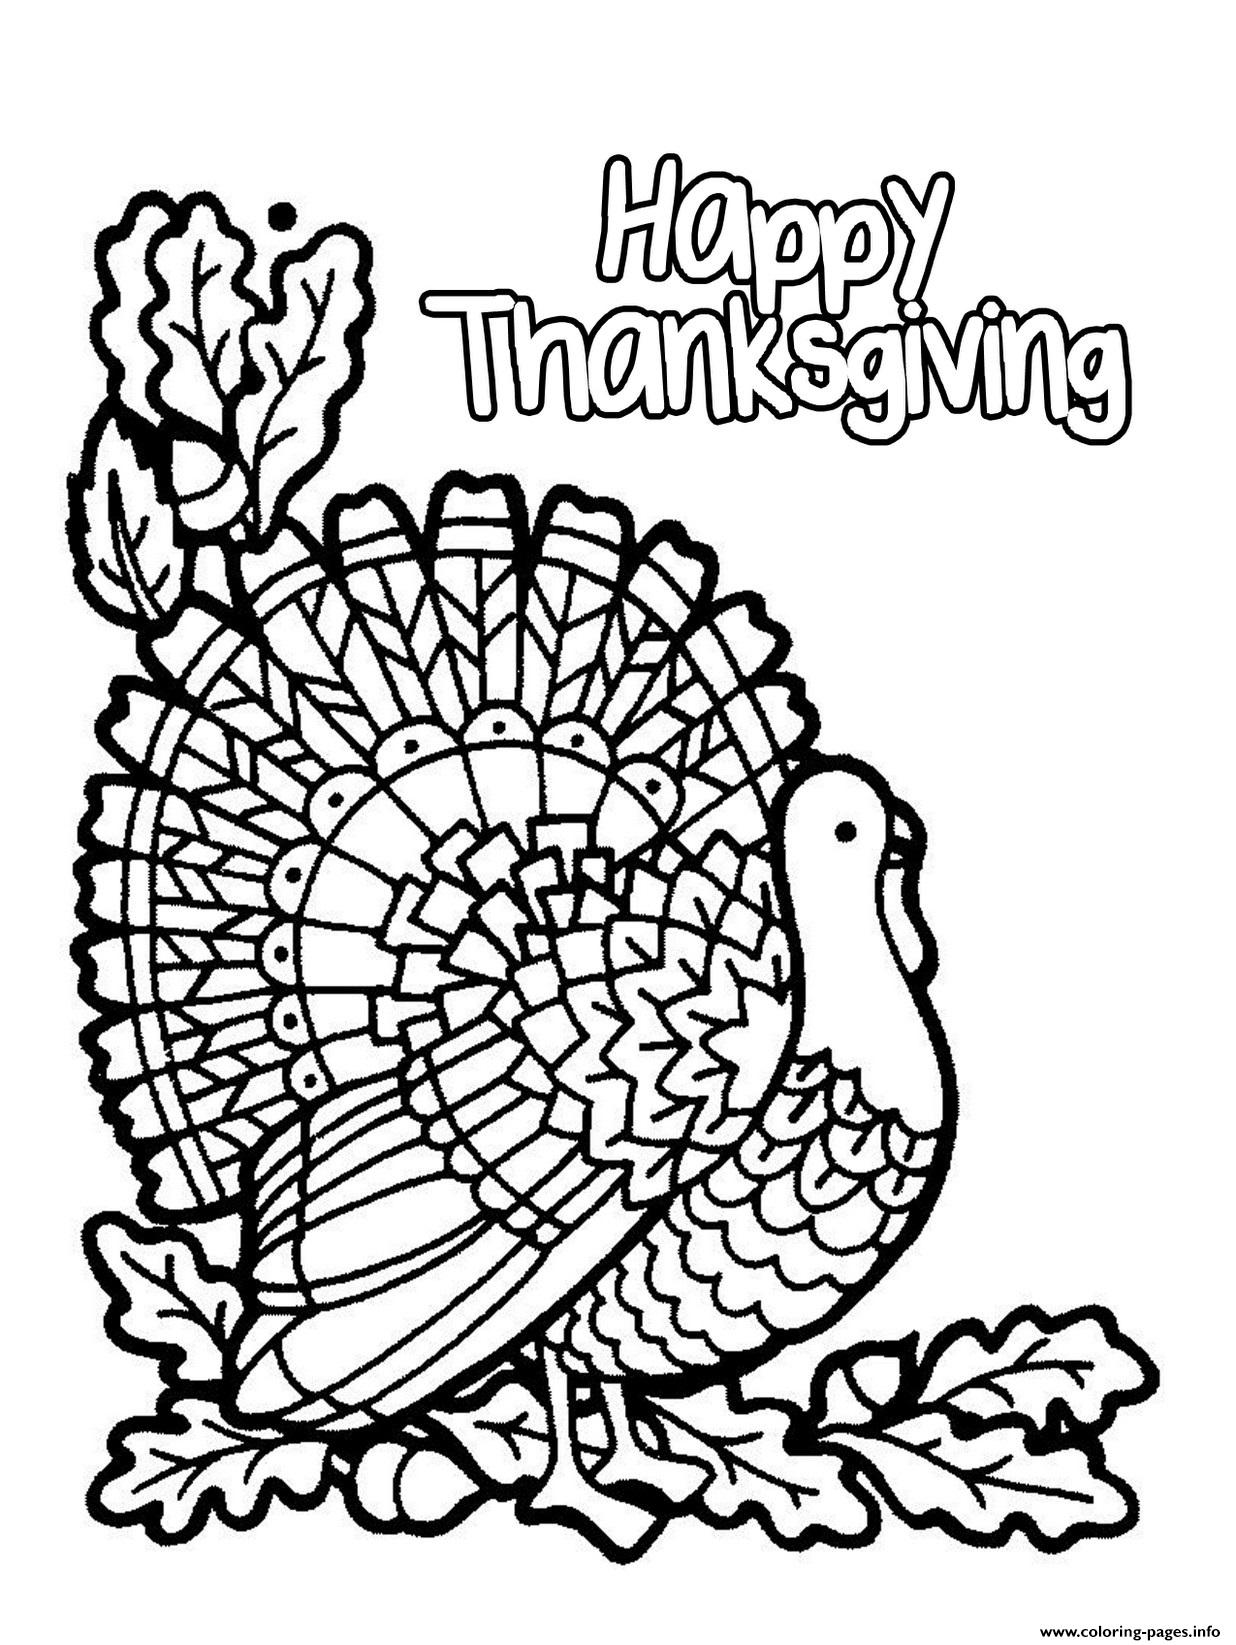 Happy thanksgiving turkey coloring pages printable for Thanksgiving coloring pages already colored